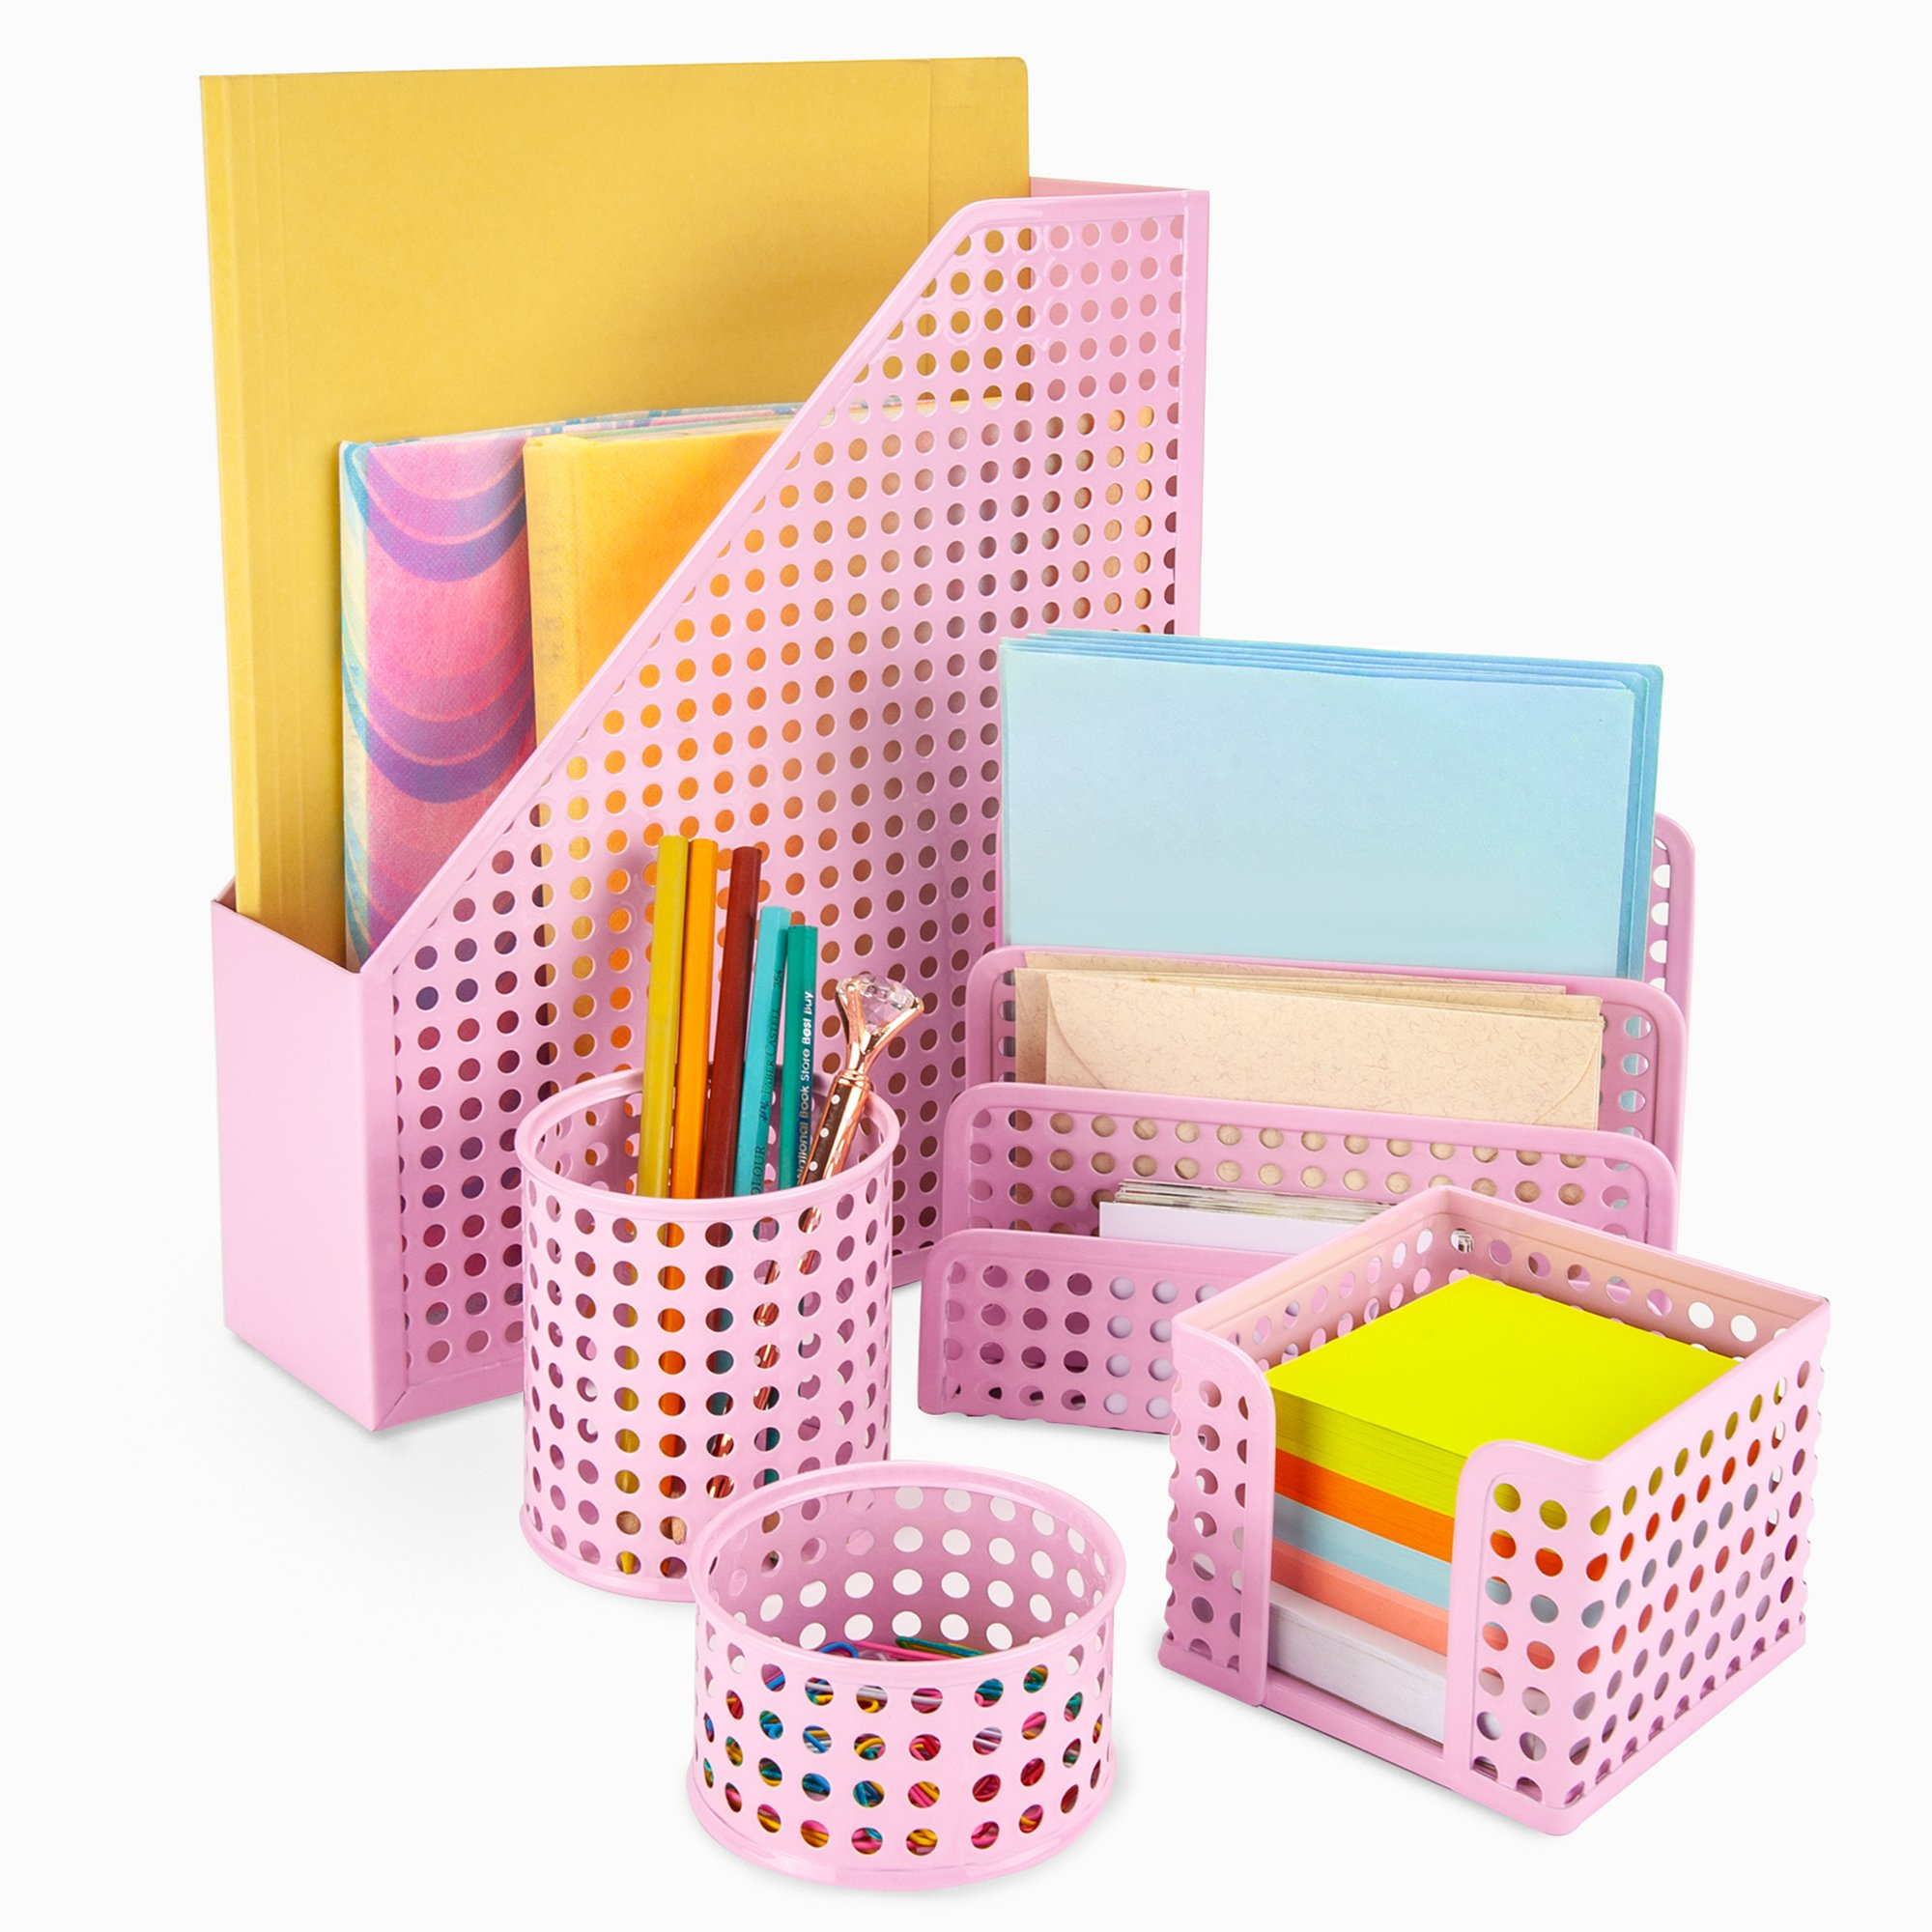 Pink Desk Organizer Office Desk Set: 5 Desktop Accessories for Women. Includes File/Paper Organizer, Mail Holder, Pen Cup, Note Holder, Clip Cup. Cute Decor for Storage Supplies Organizers